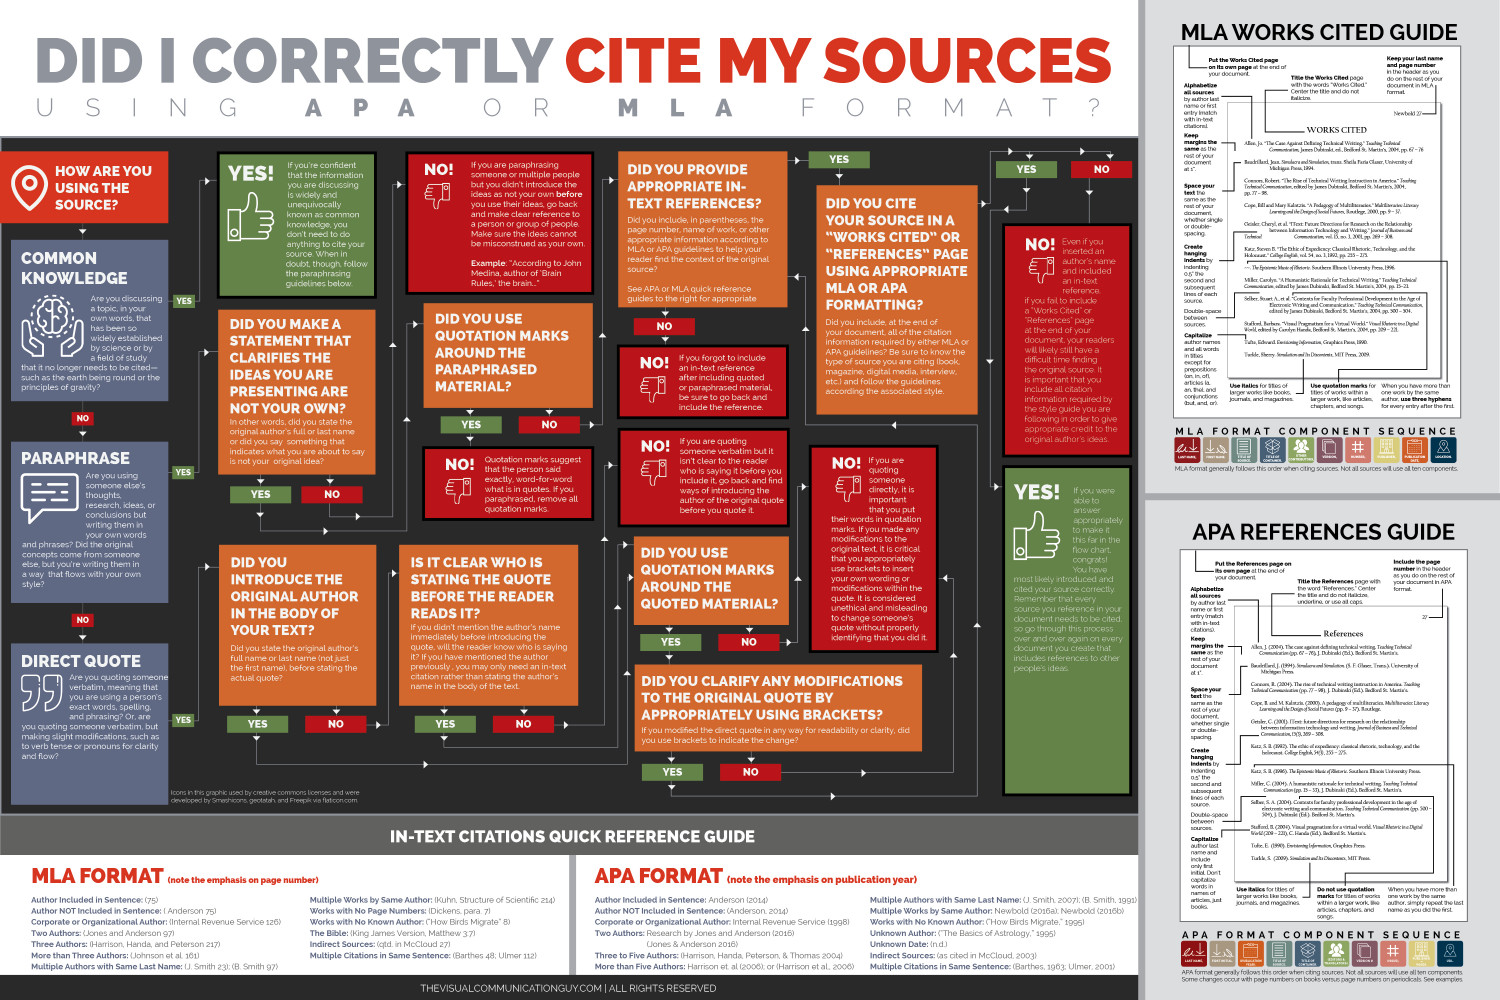 Did I Correctly Cite My Sources? Flowchart Infographic